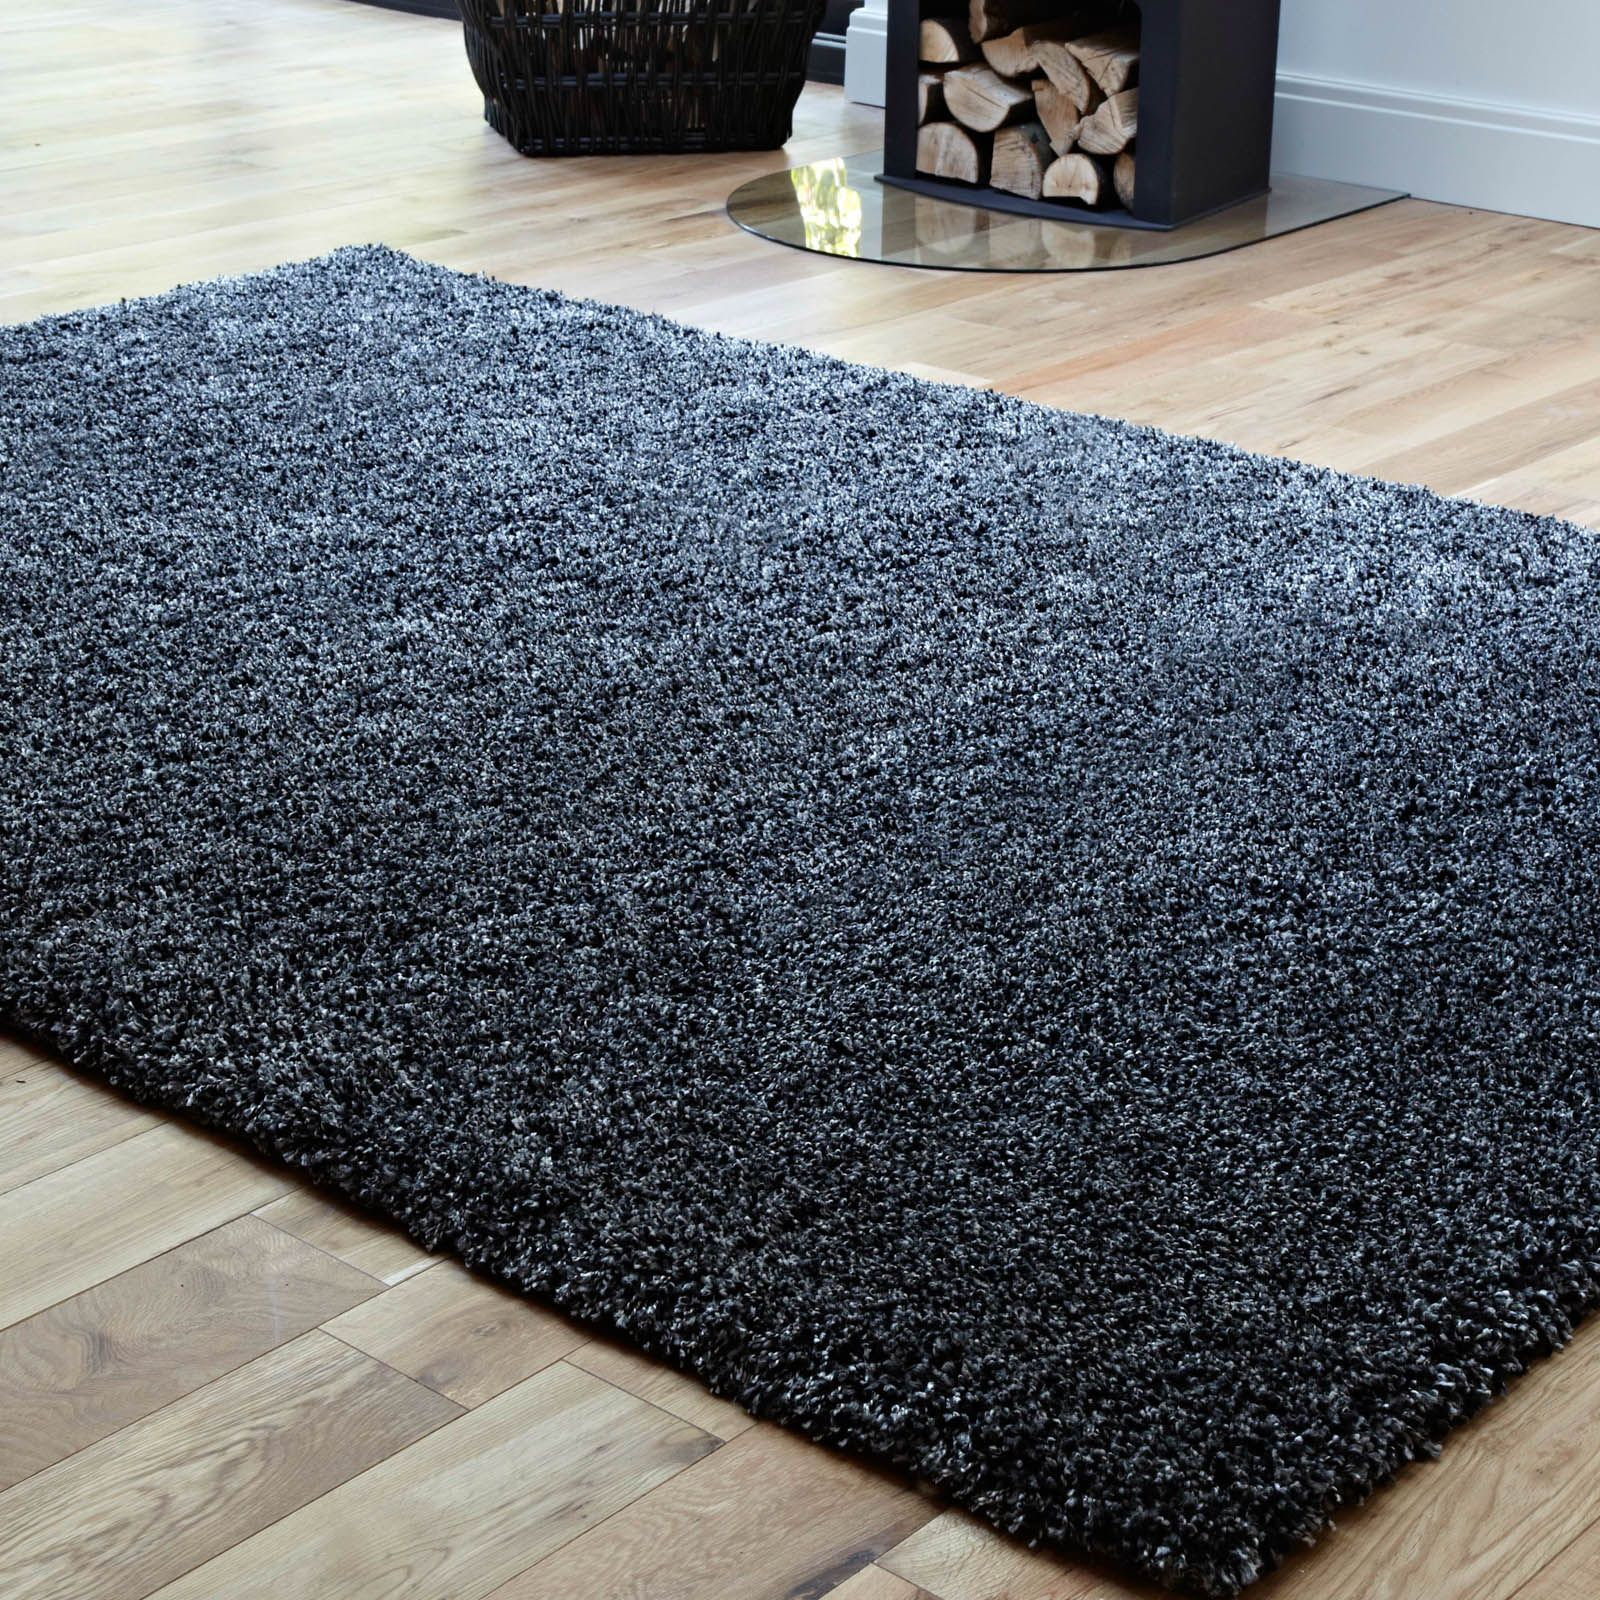 Purity Textures Rugs Ptx04 Charcoal Grey